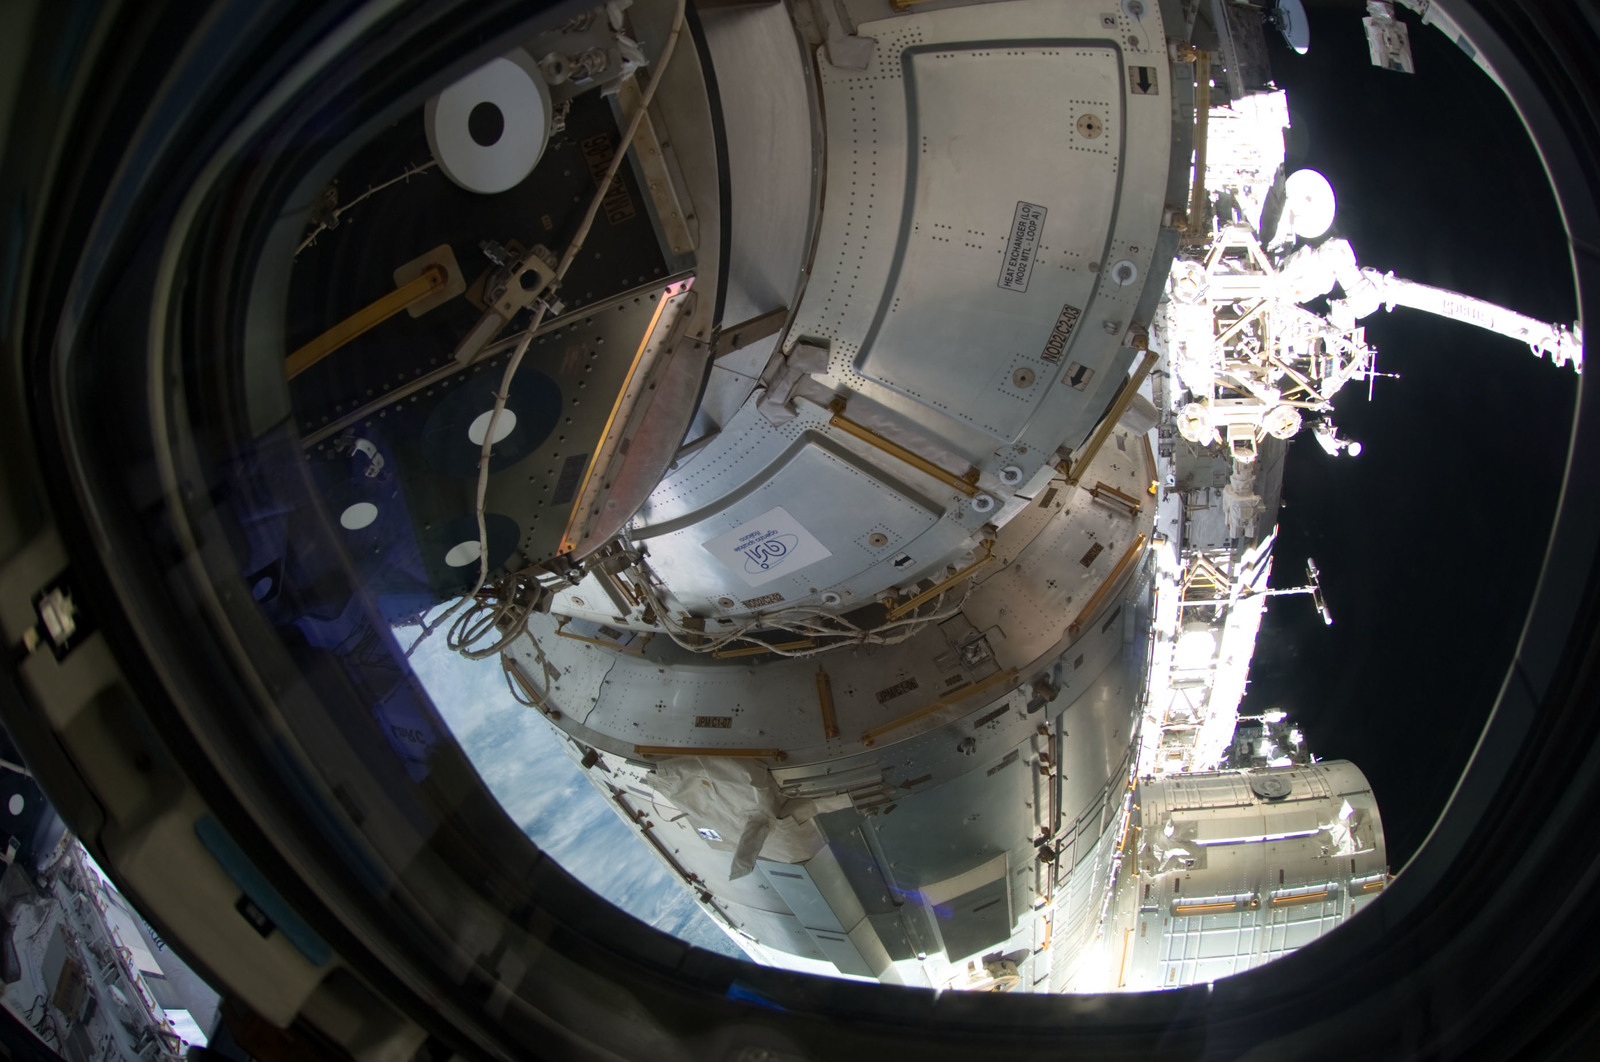 S134E011360 - STS-134 - Exterior view of the ISS as seen through a Shuttle Endeavour Window